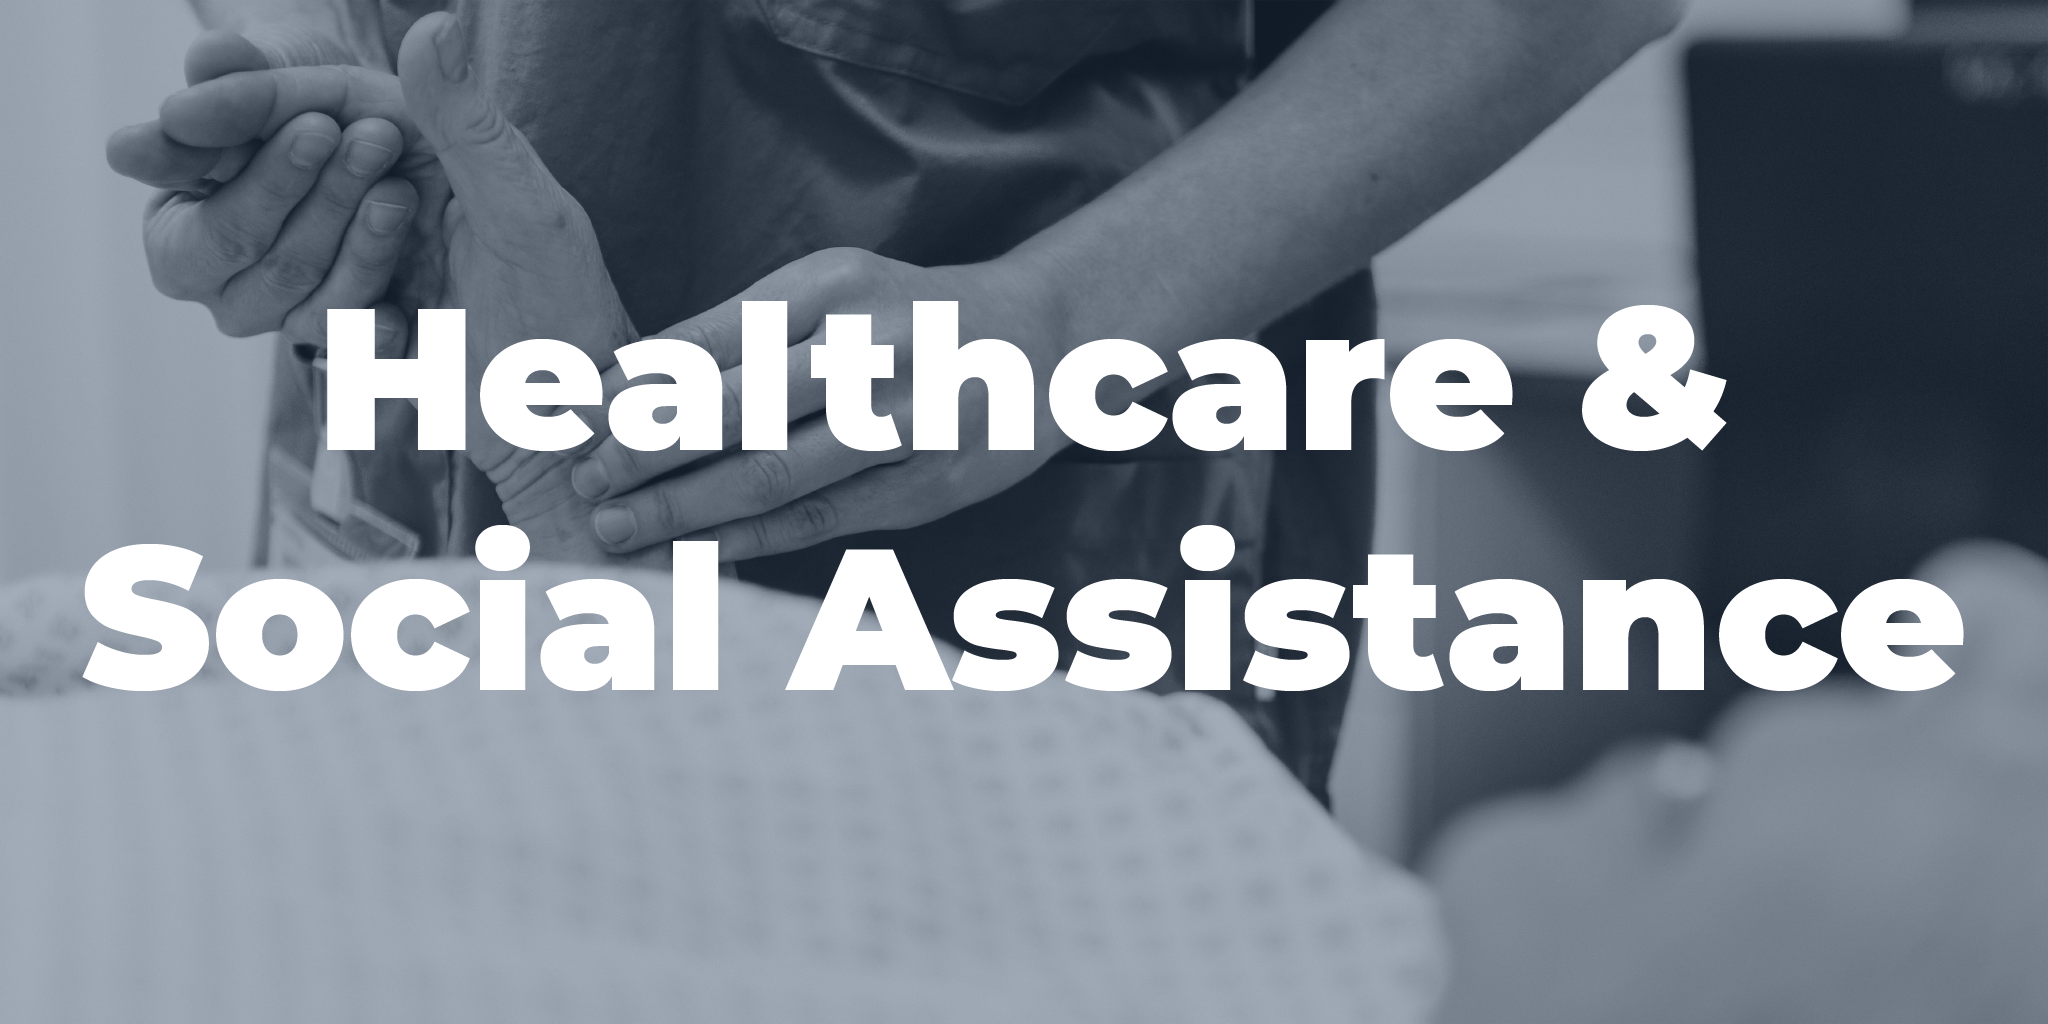 Healthcare & Social Assistance